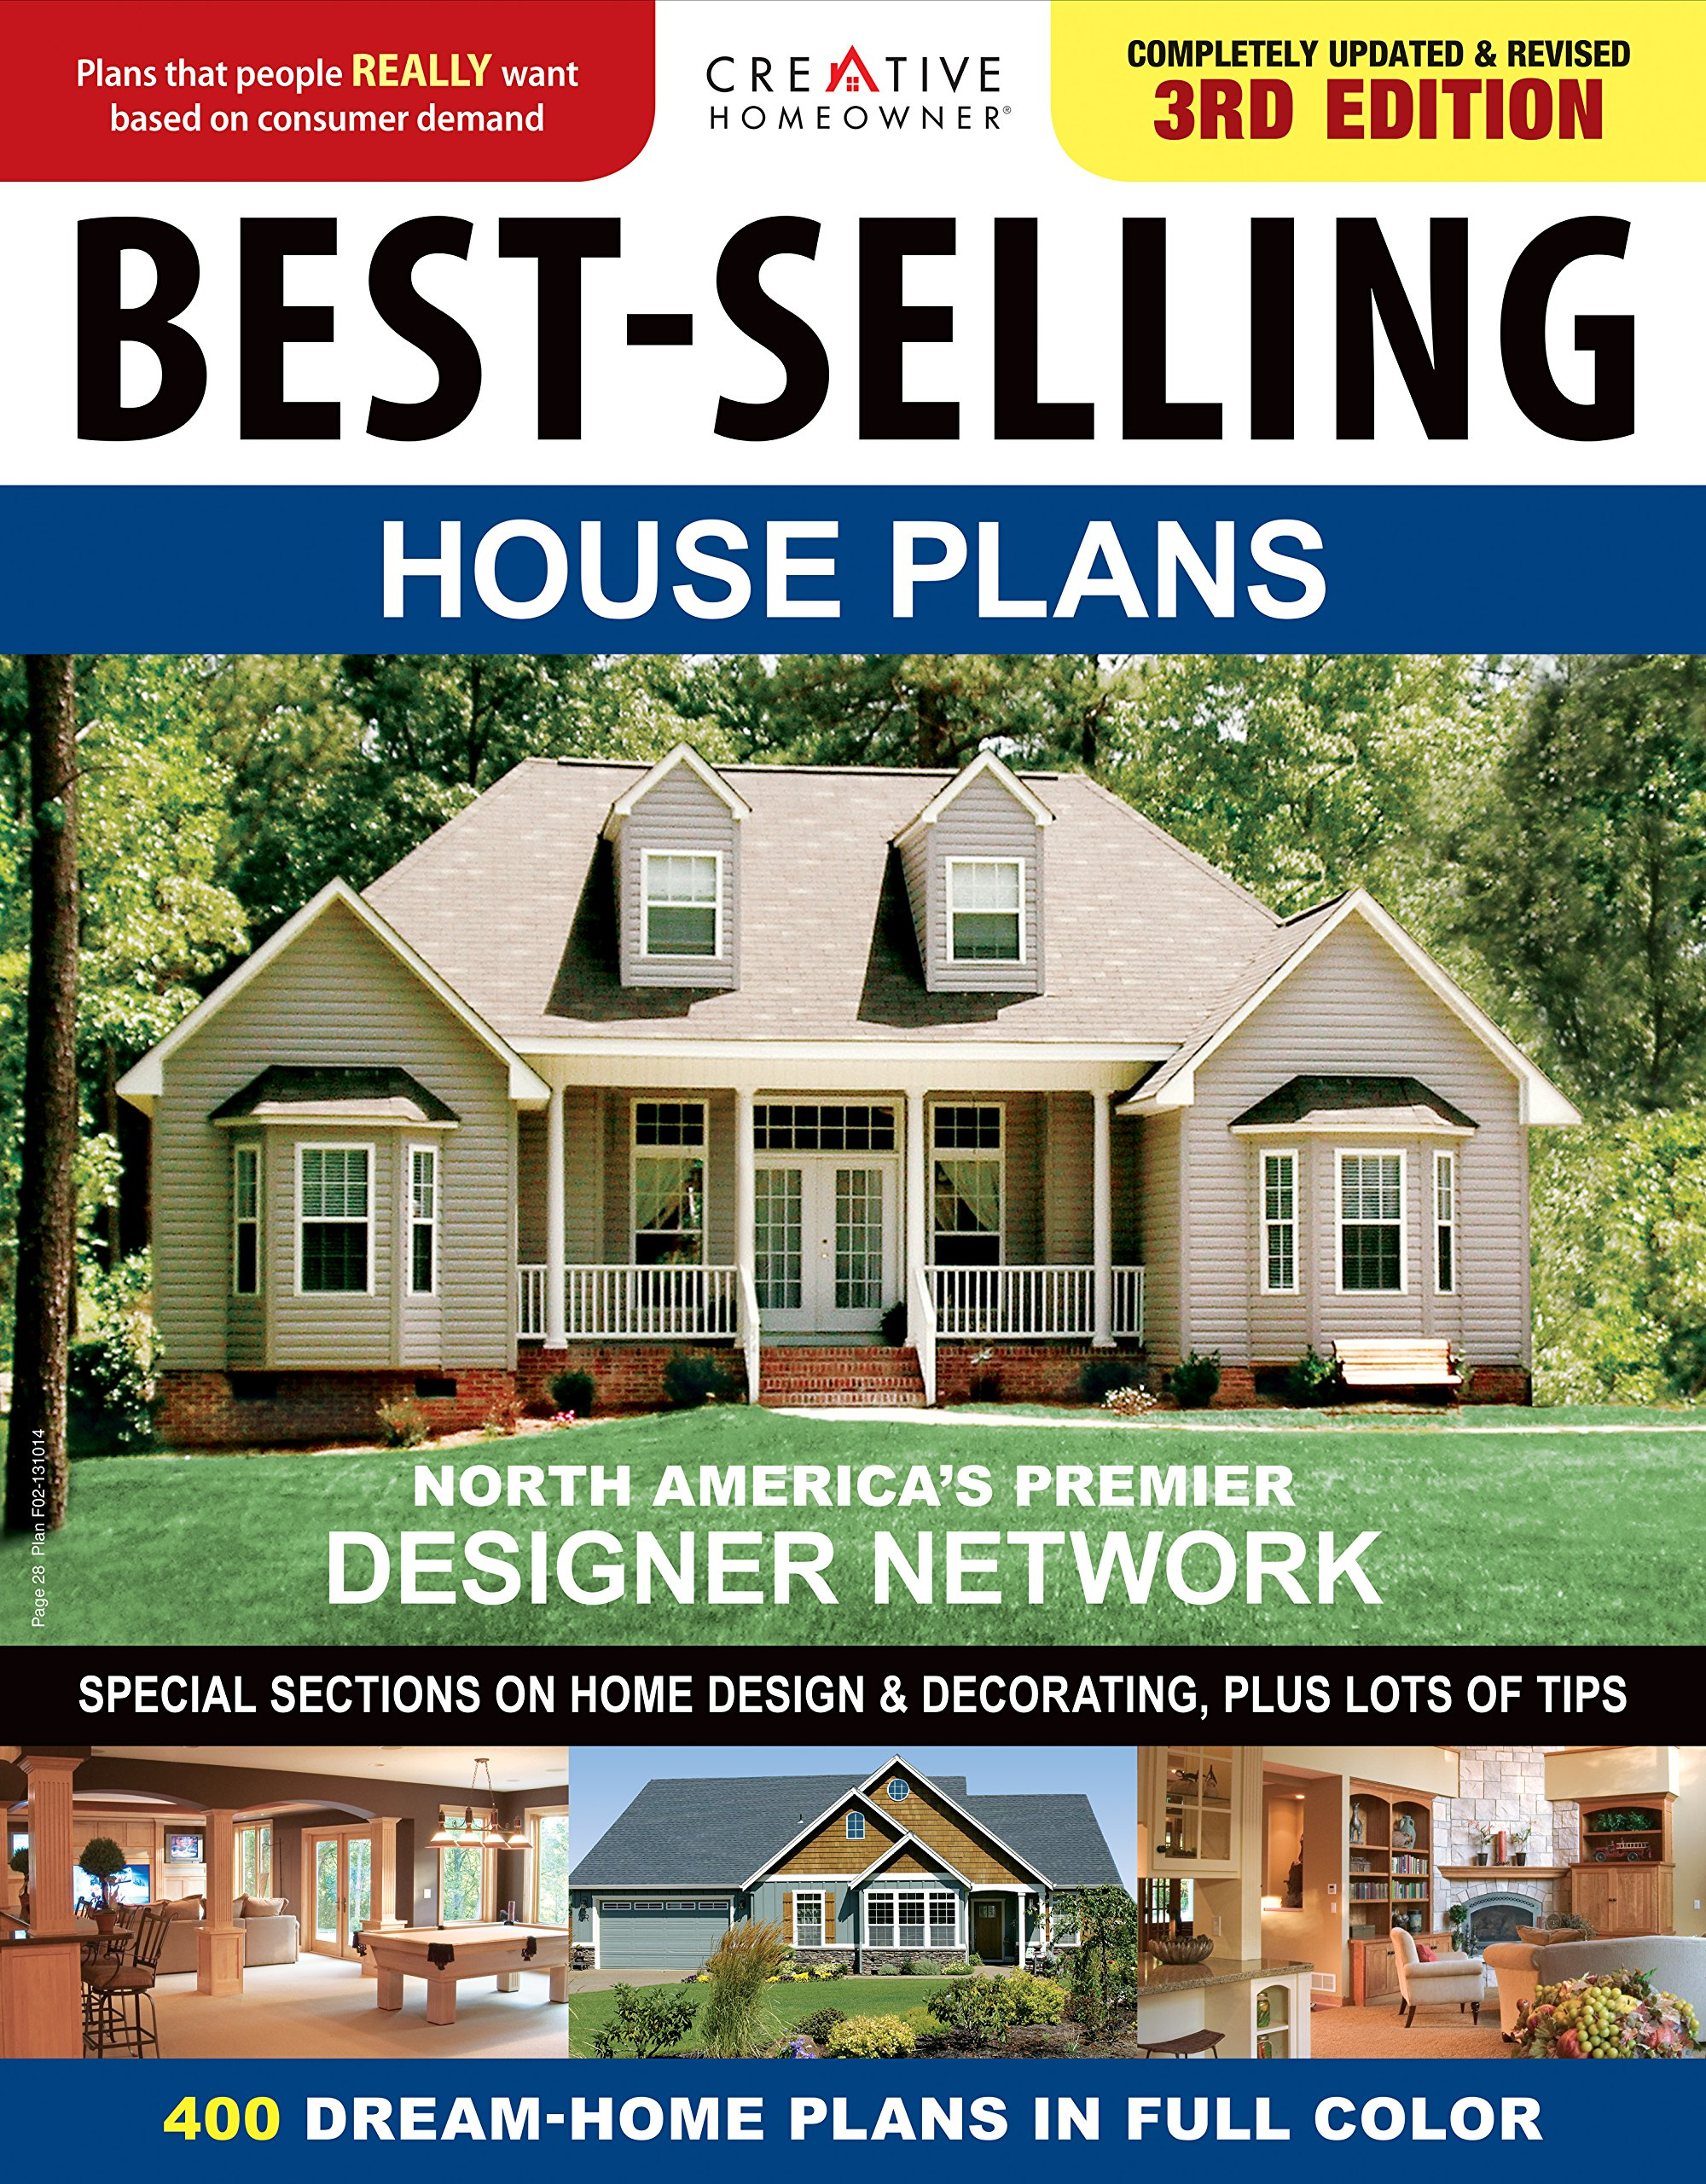 Best Selling House Plans Creative Homeowner 9781580117616 Amazon Books